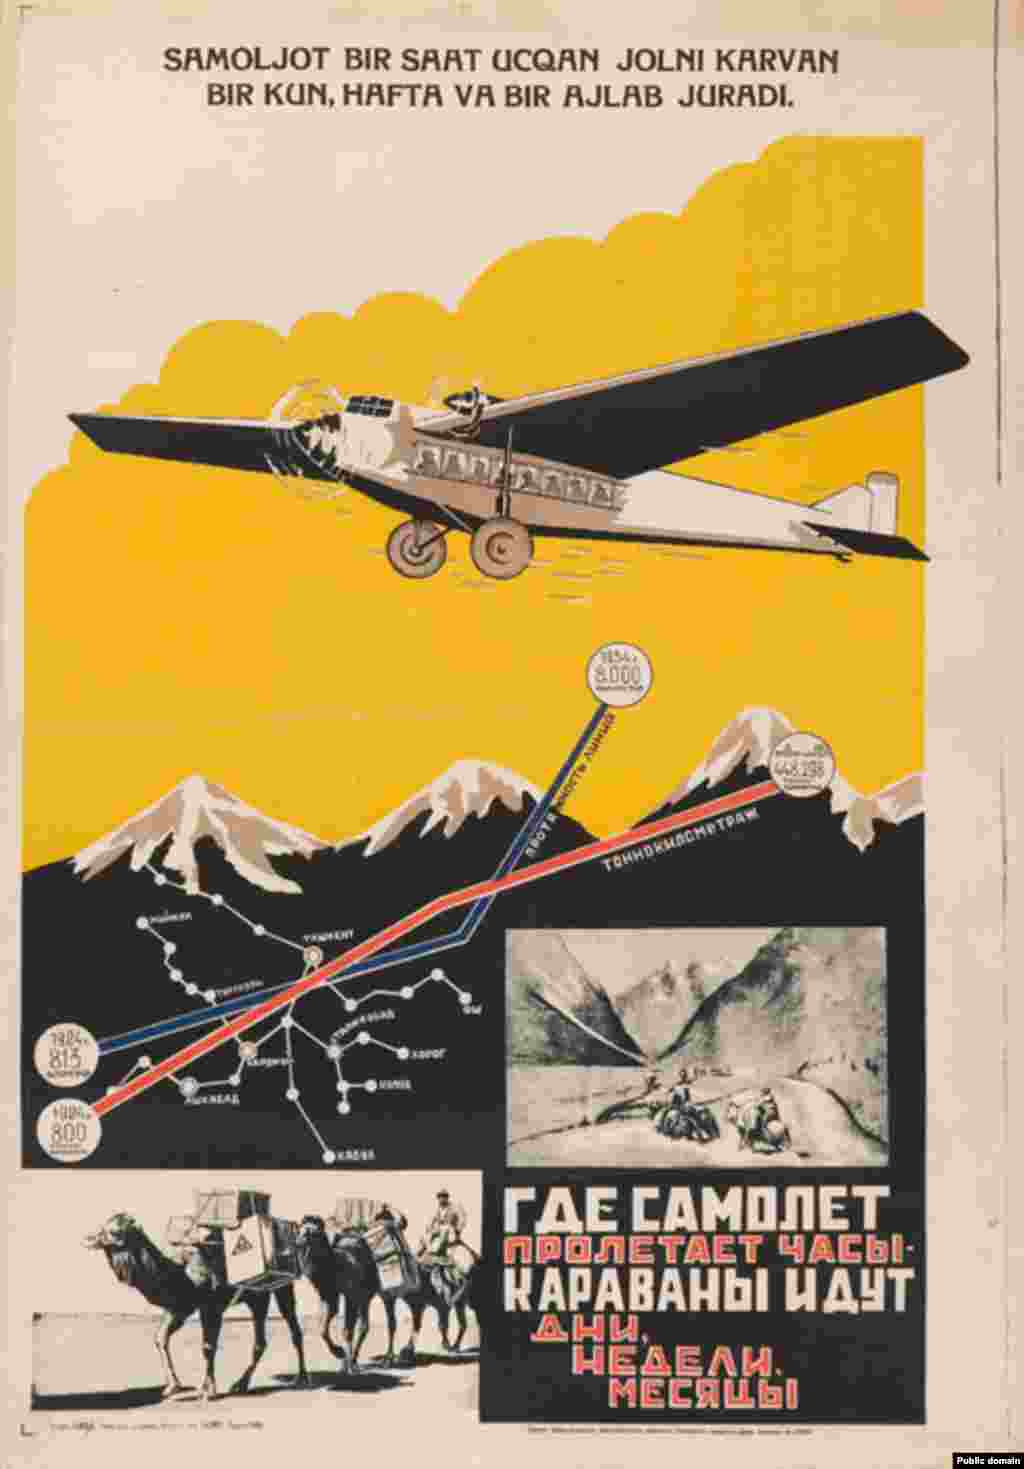 A 1930s poster in Russian extolls the advantages of flying instead of traveling overland in a caravan. The poster says how a plane can get you to your destination within hours, whereas caravans take days, weeks, or even months. (Artist: A. Stren)